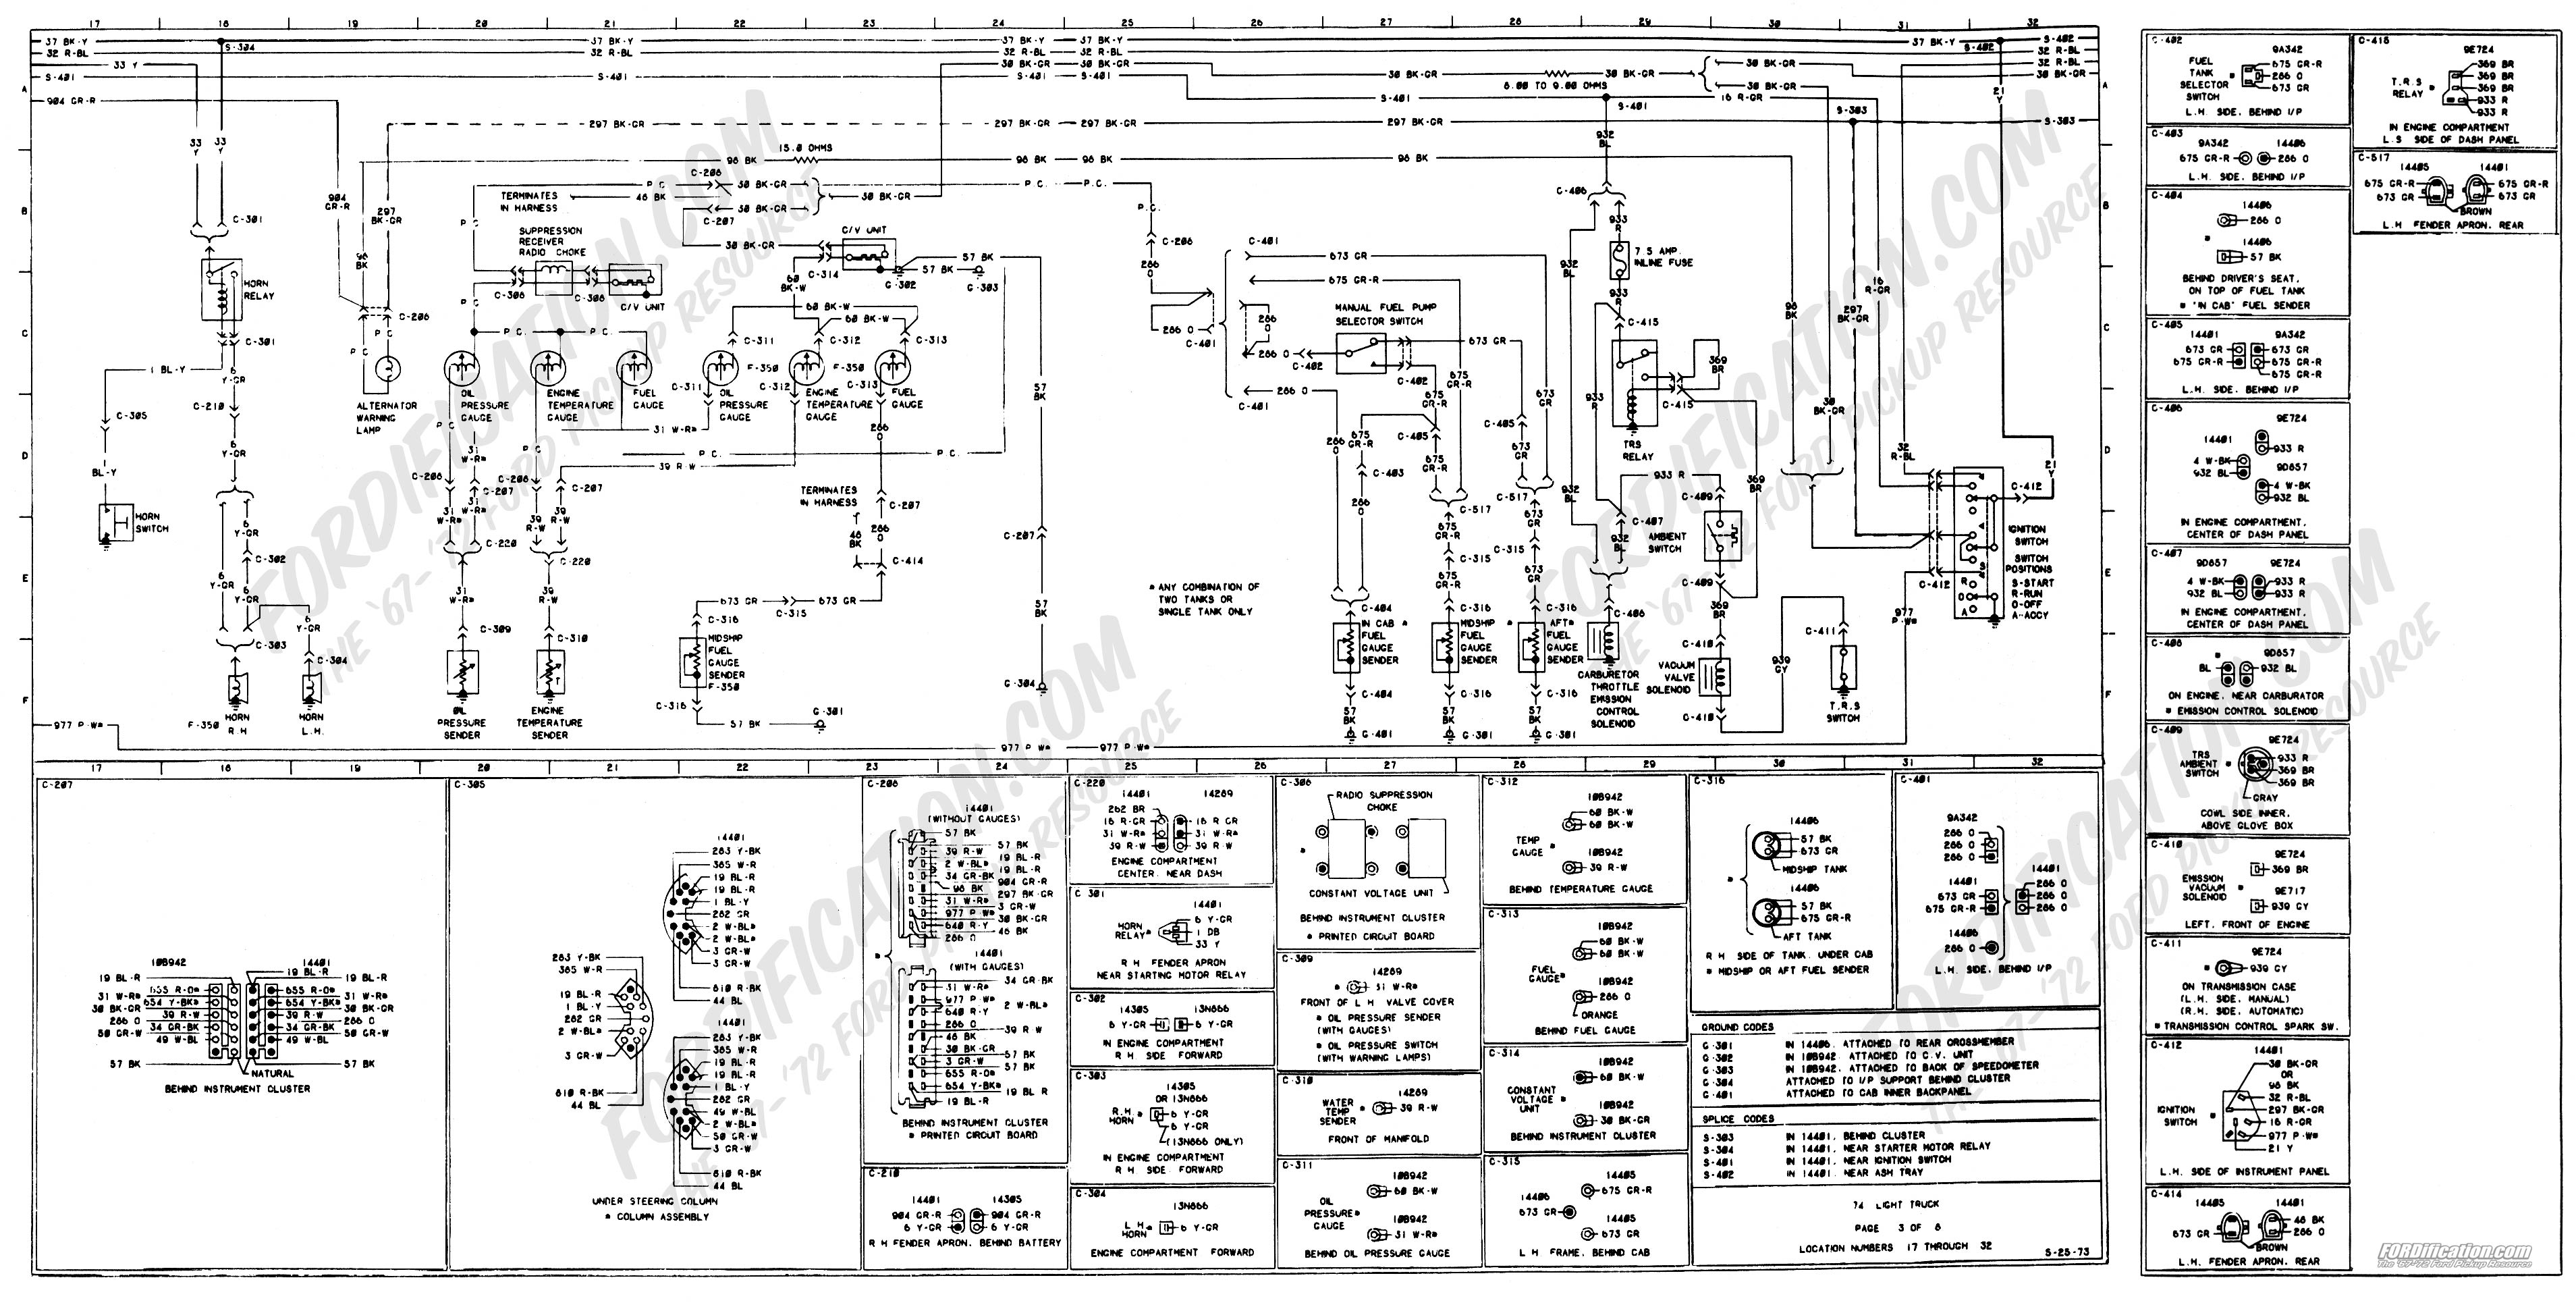 f350 wire diagram wiring diagram progresif